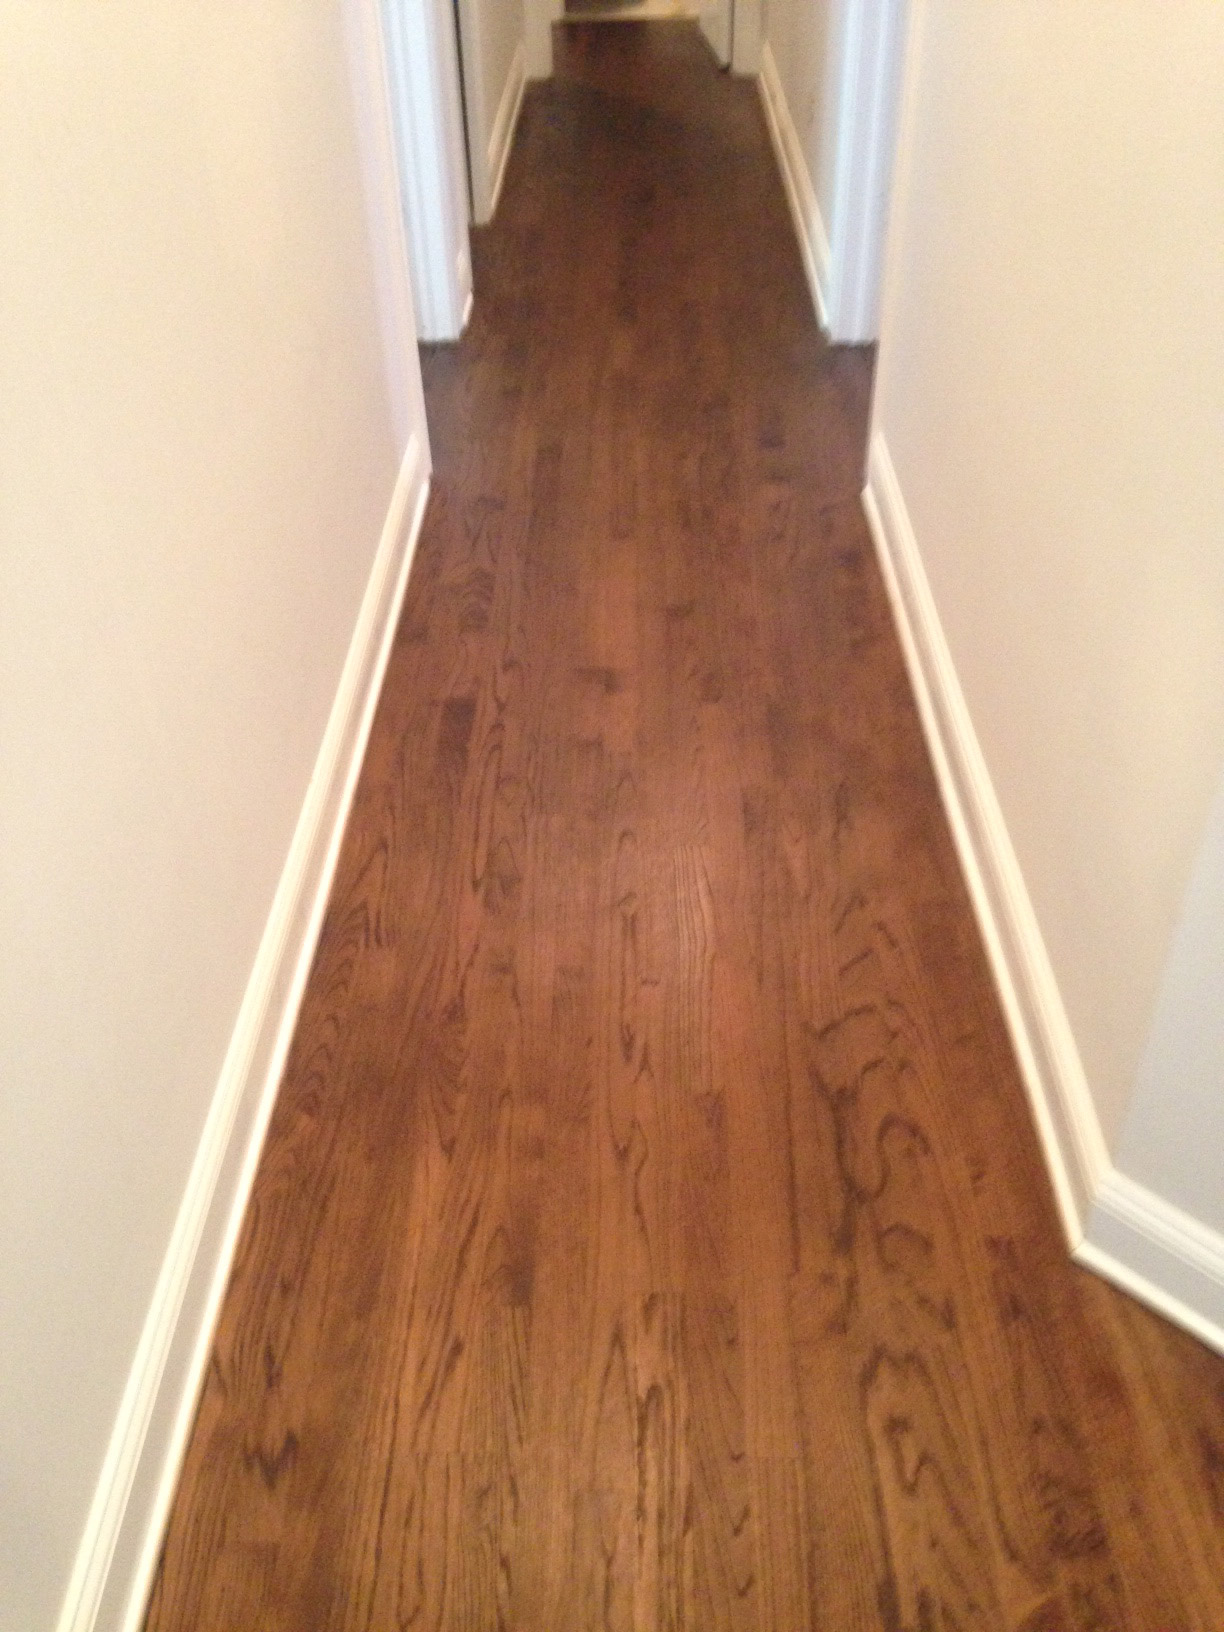 New hardwood floors wood floor refinishing epping forest for Quality hardwood floors